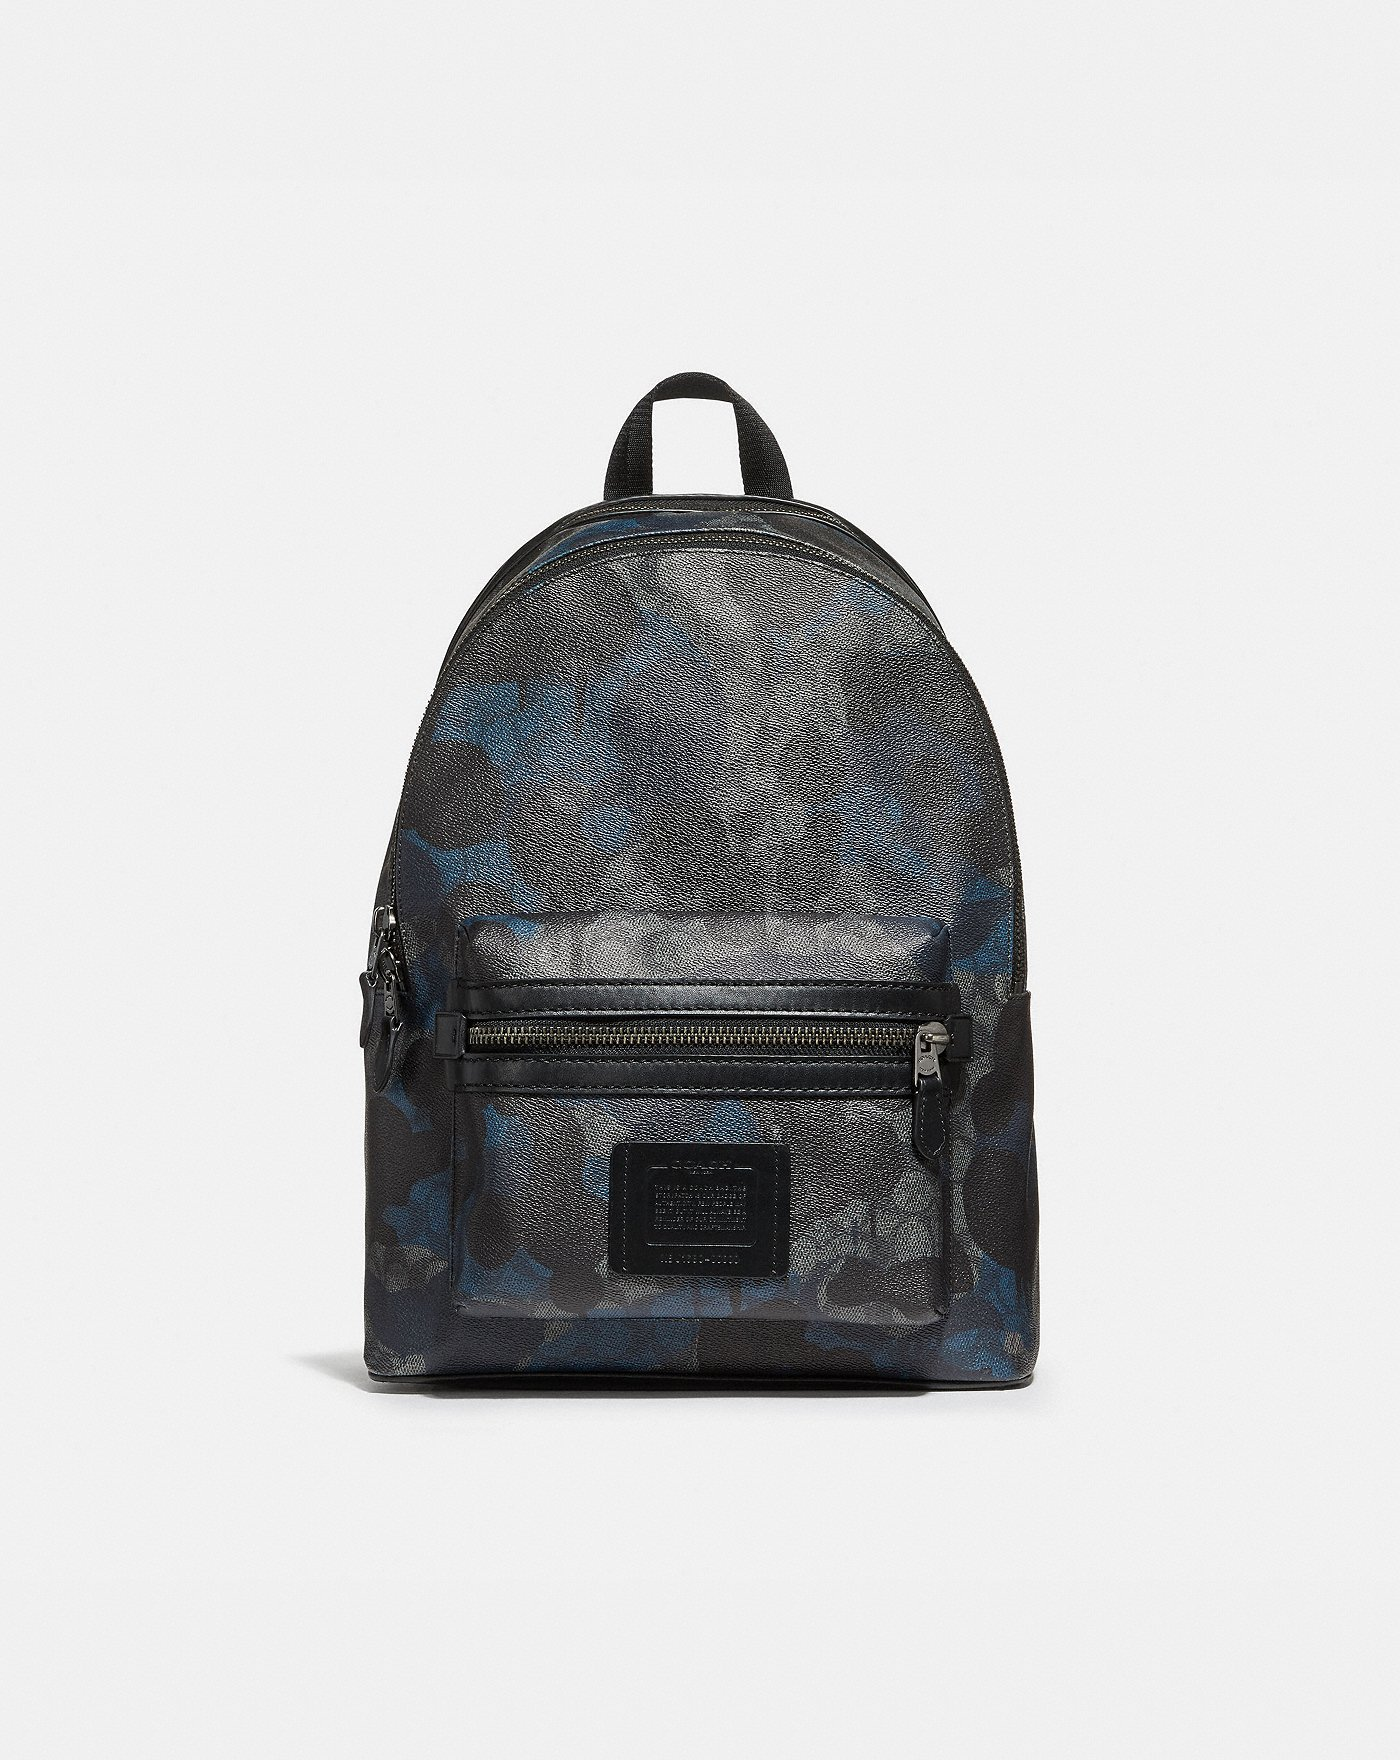 239b0d63b84e COACH  Academy Backpack in Signature Wild Beast Print